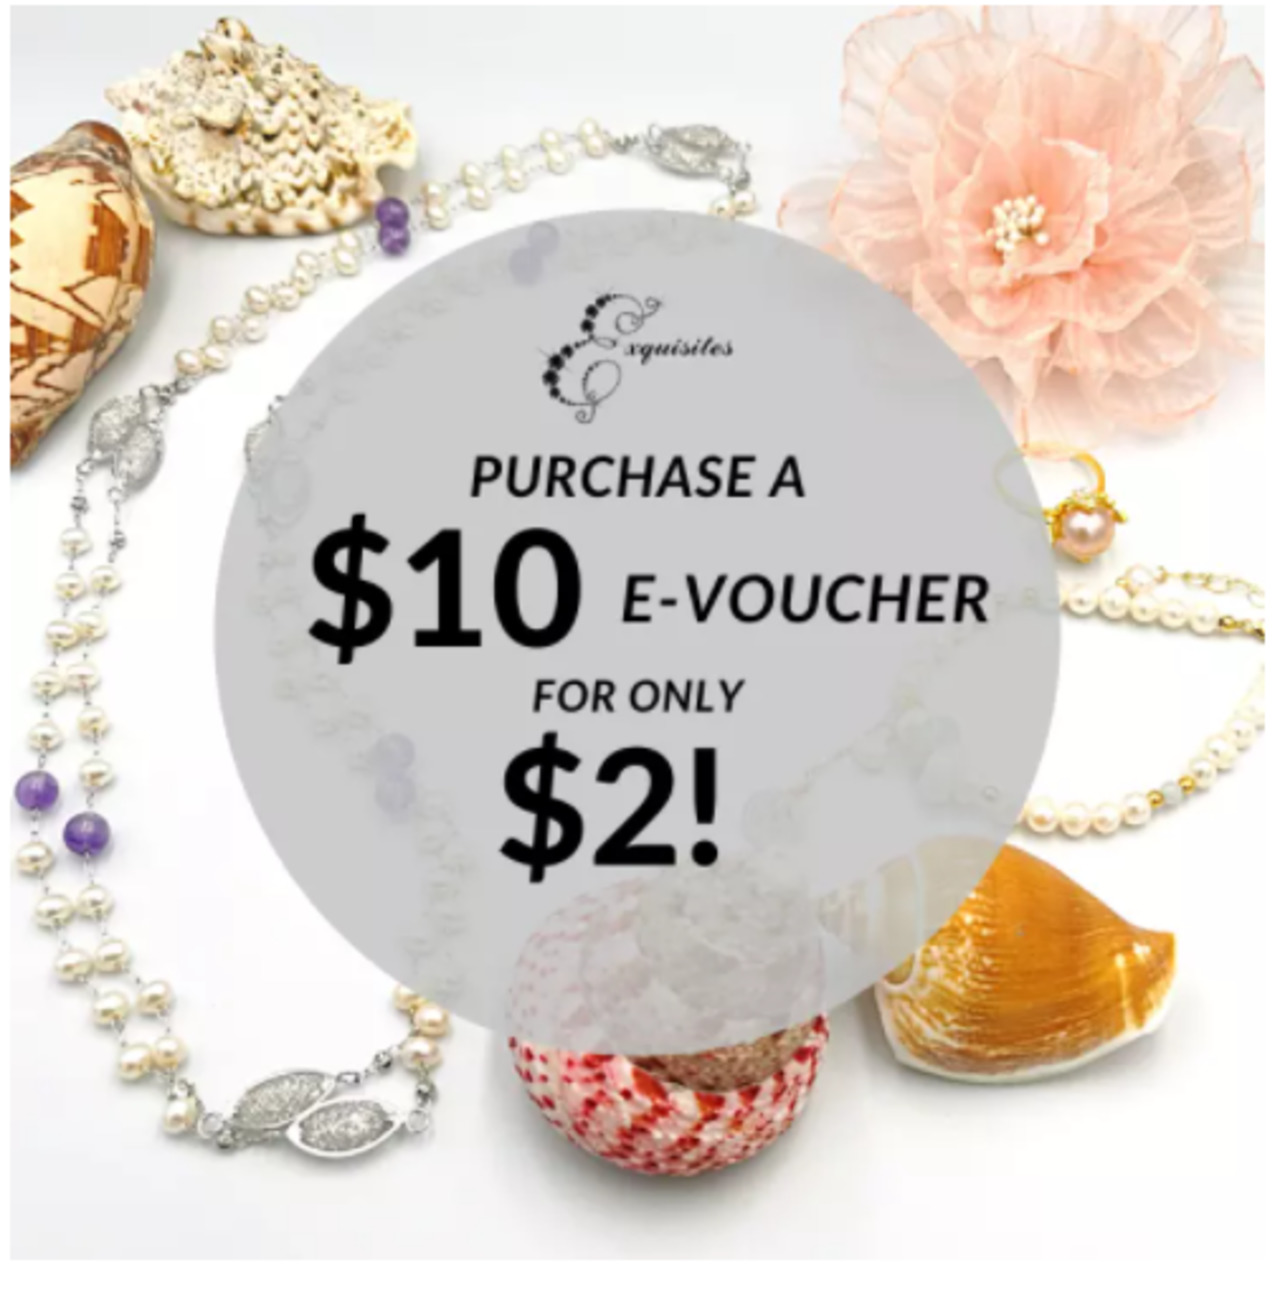 [Exquisites Jewels] $10 off voucher for only $2! Genuine pearl jewelry (redeem in store)